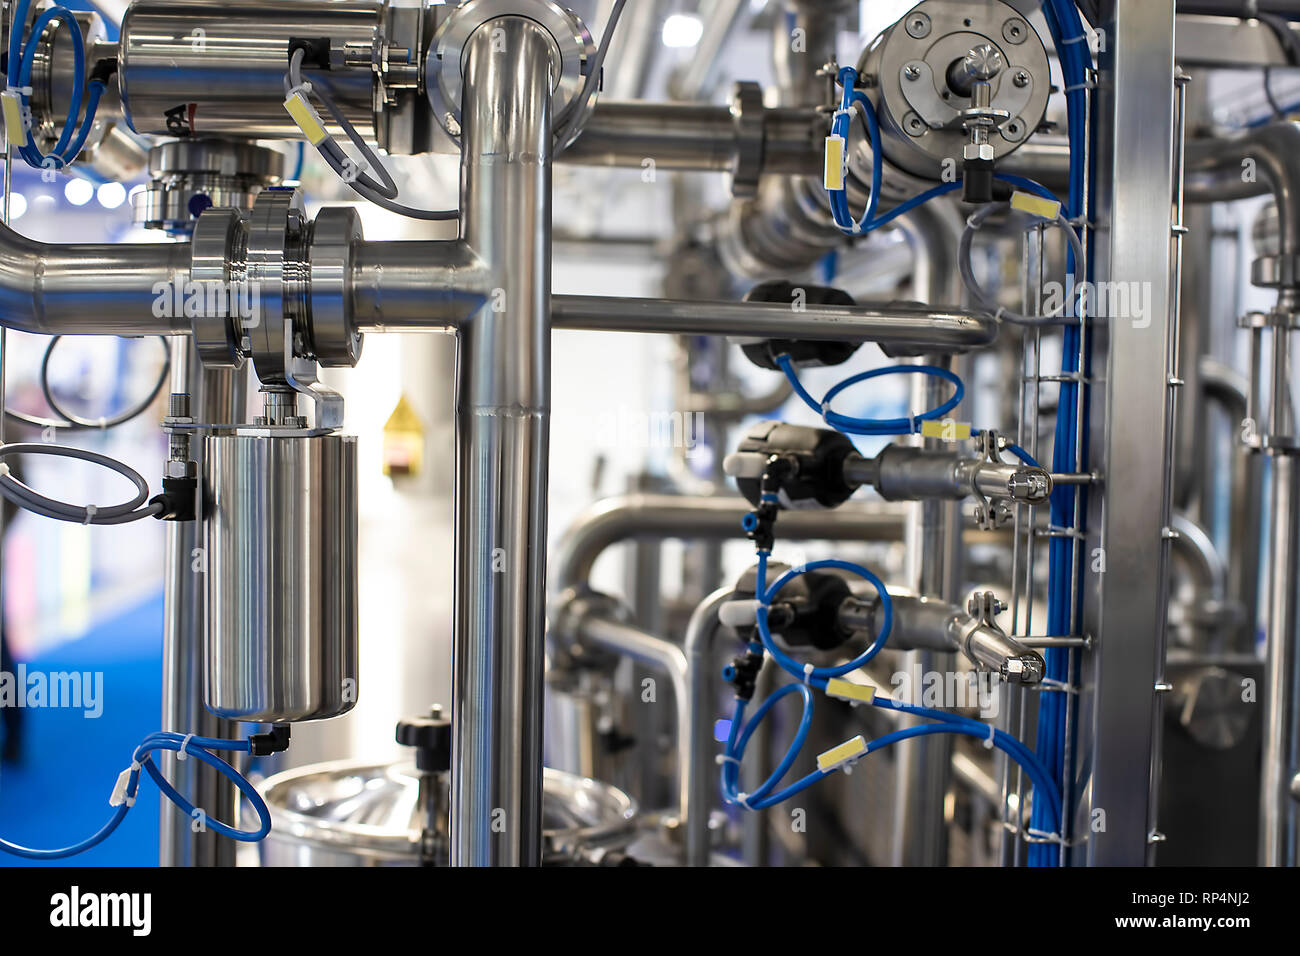 Stainless steel pipes in the factory. - Stock Image